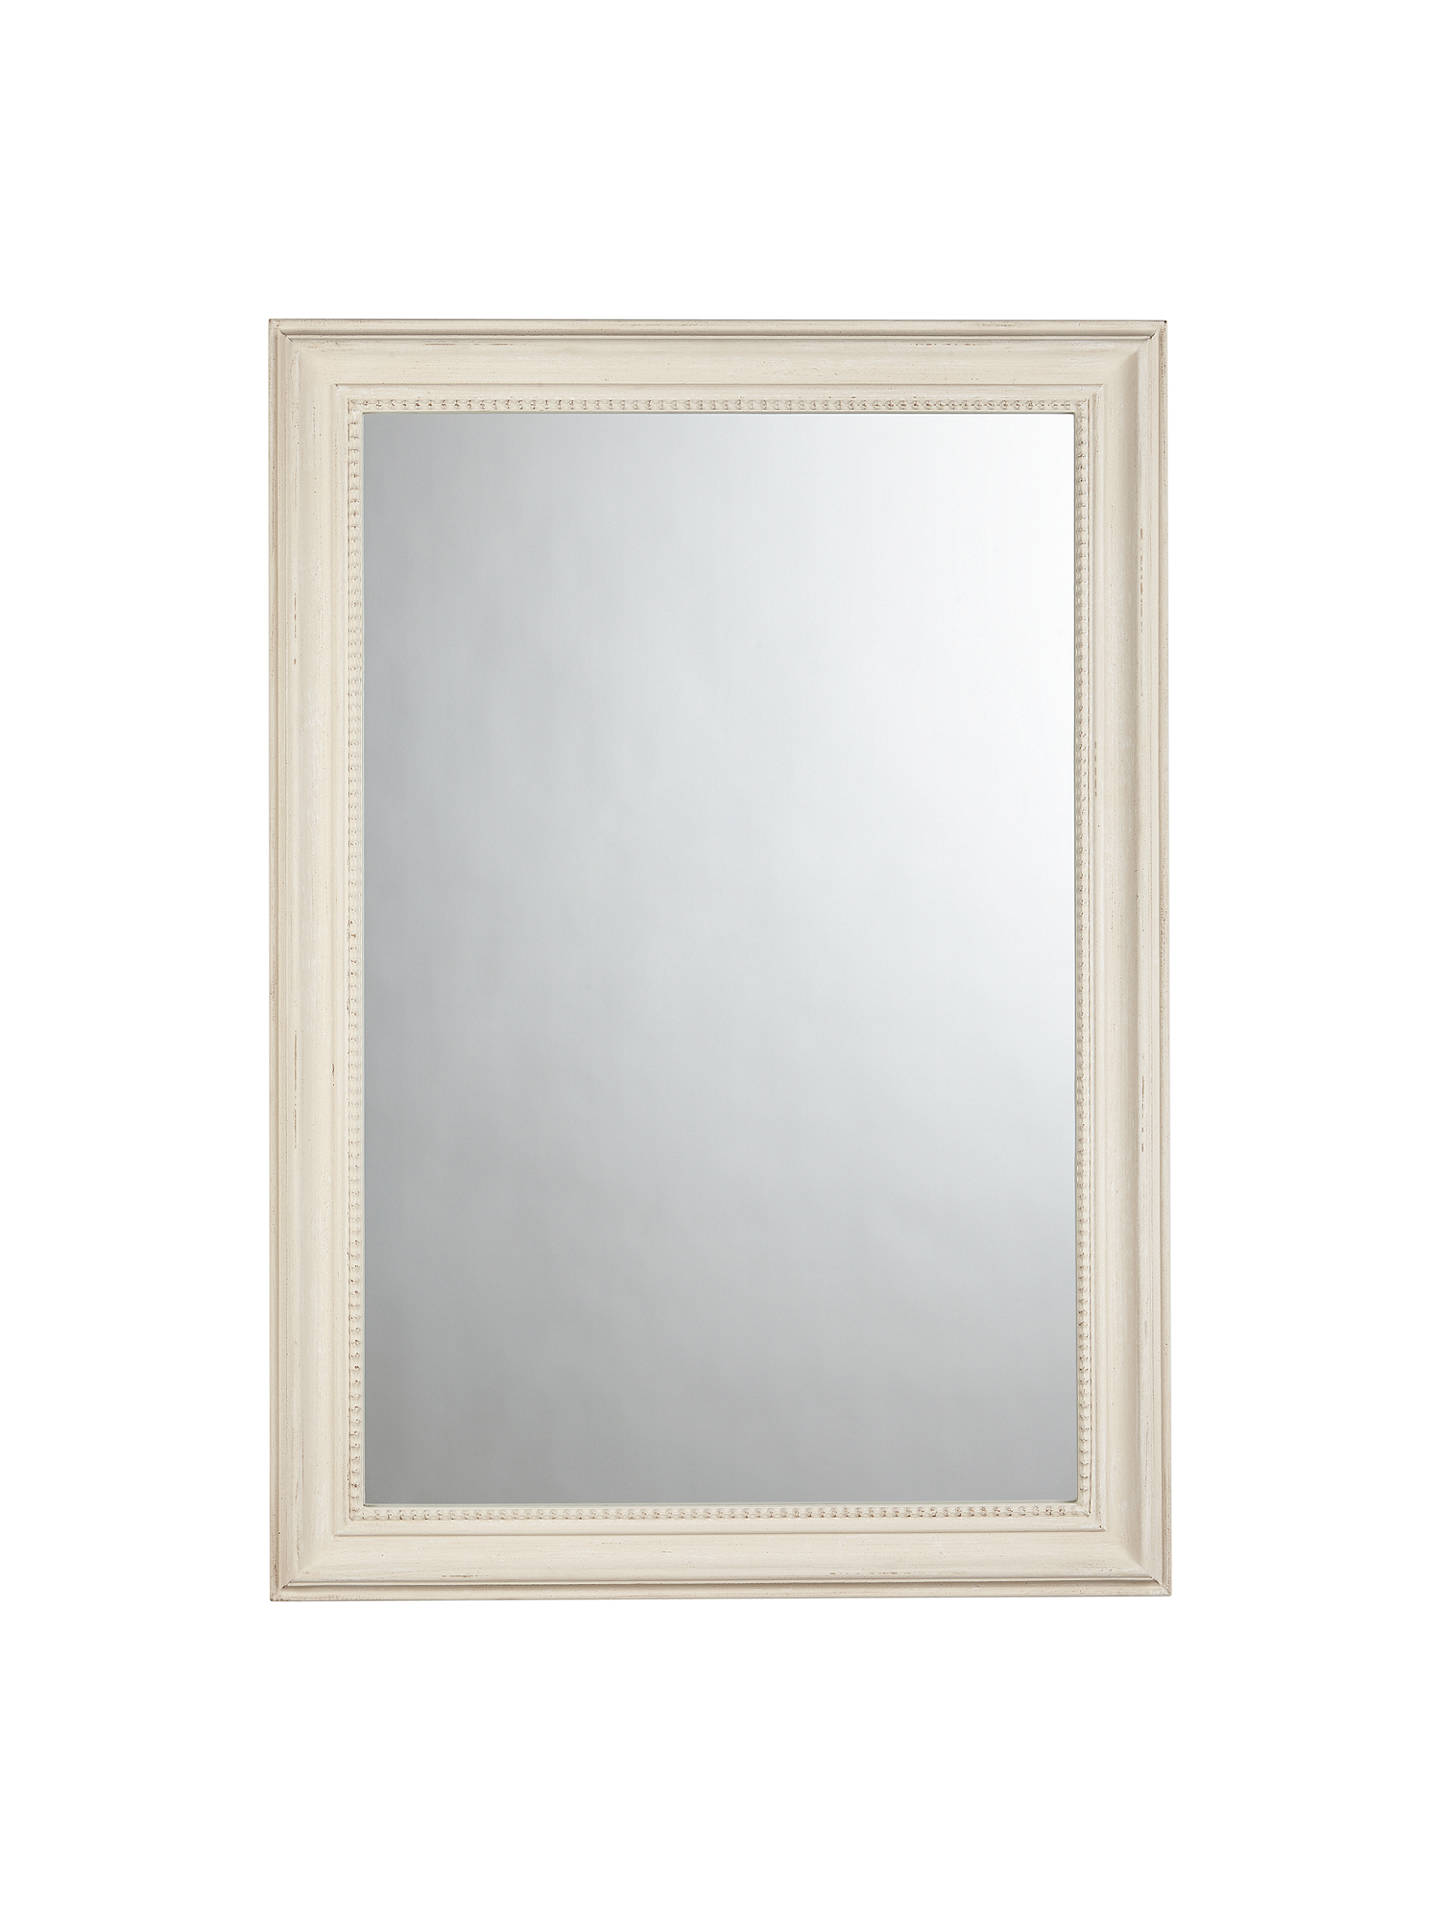 BuyJohn Lewis & Partners Distressed Mirror, 102 x 72cm, Cream Online at johnlewis.com